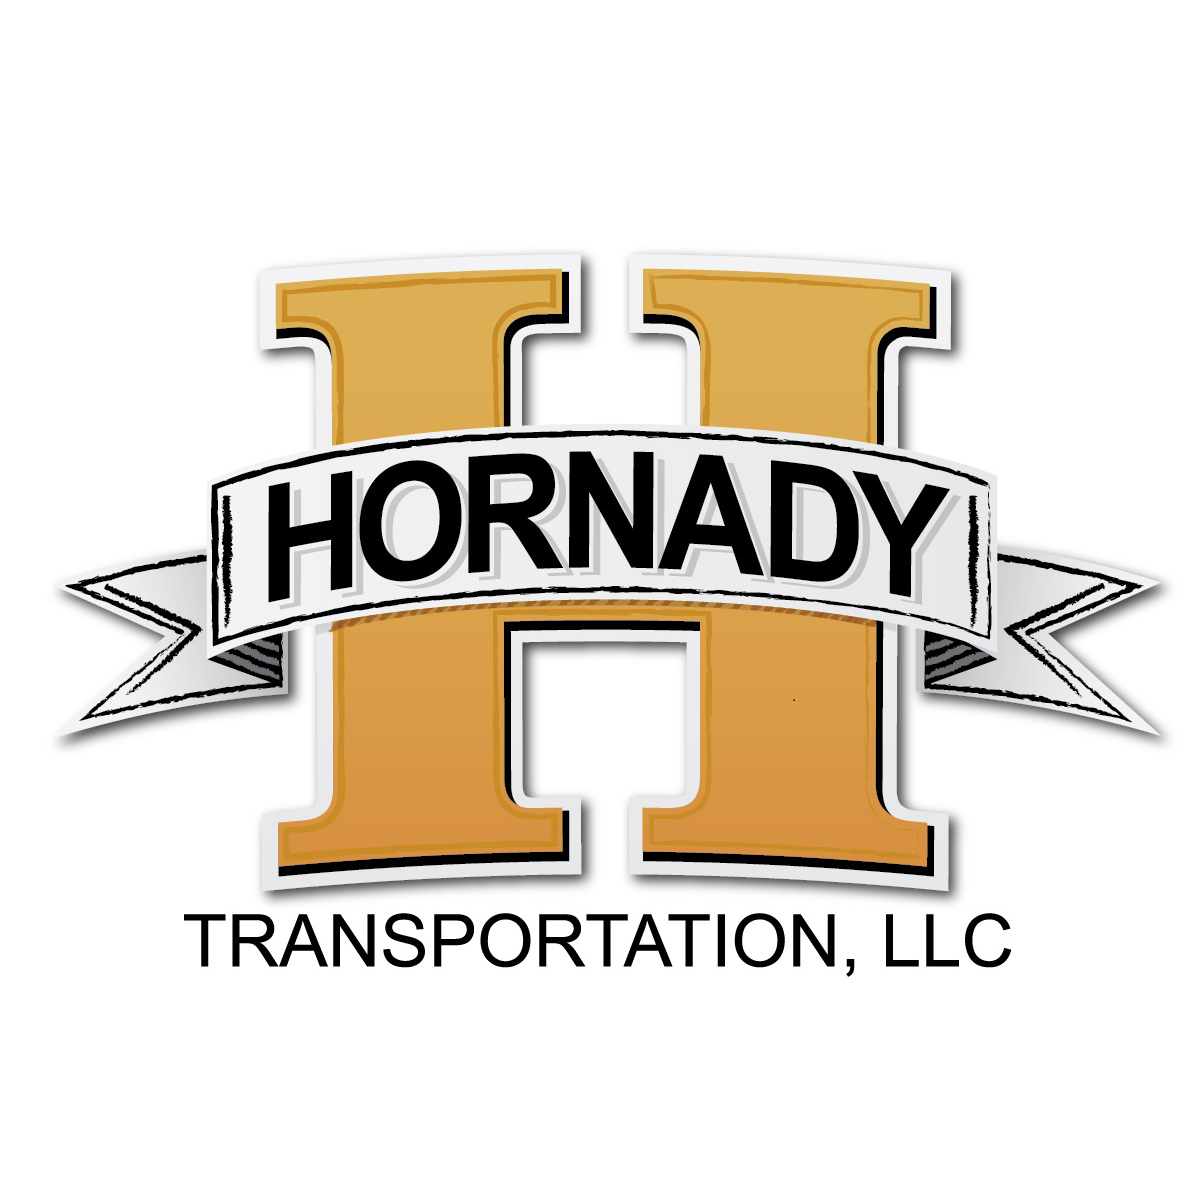 Hornady Transportation logo